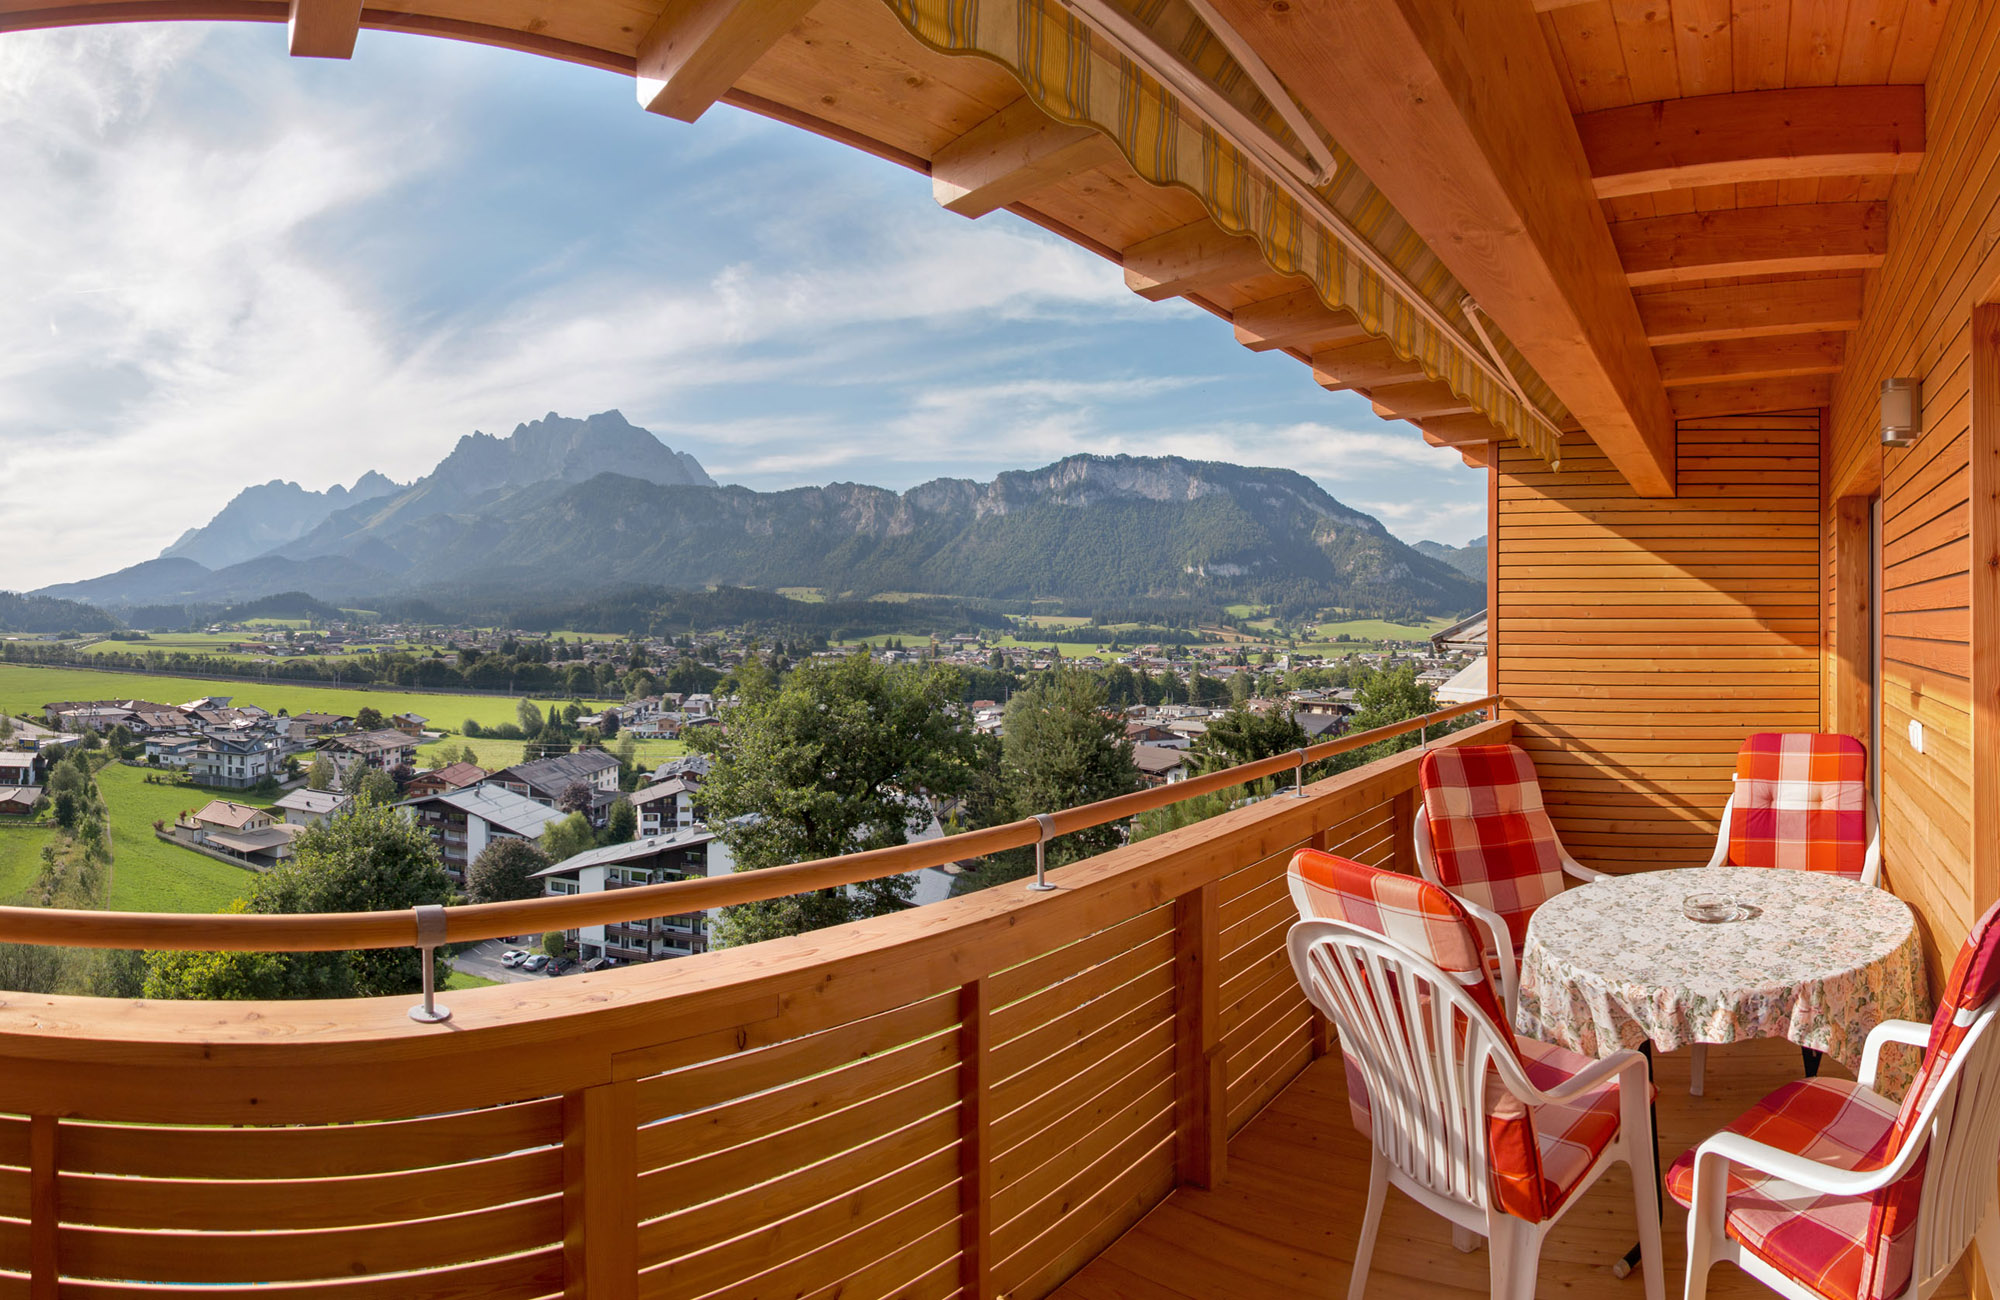 apartment-tirol-balkon-1